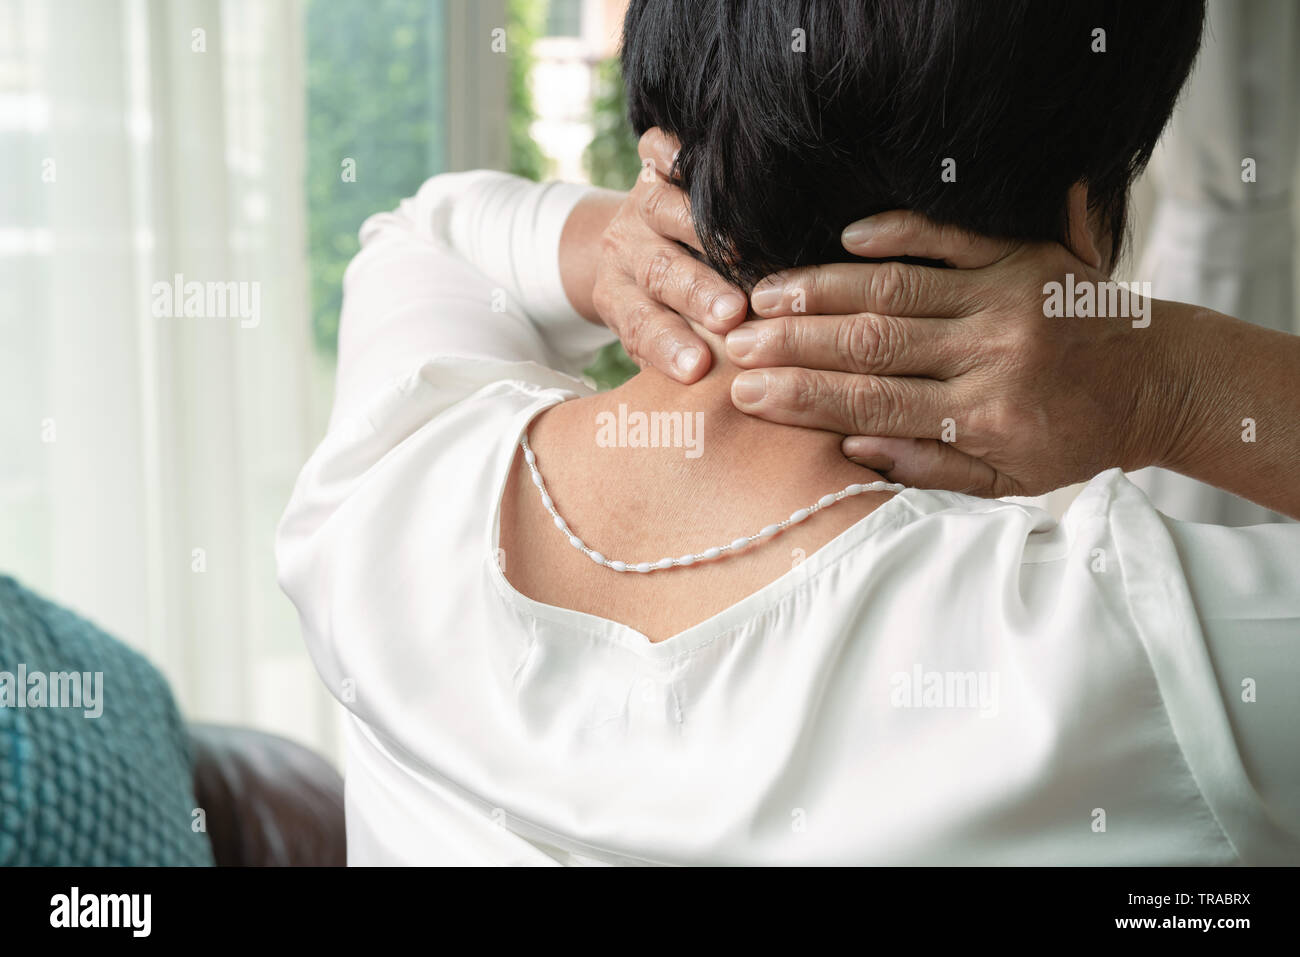 old woman suffering from neck pain, closeup, health problem concept - Stock Image